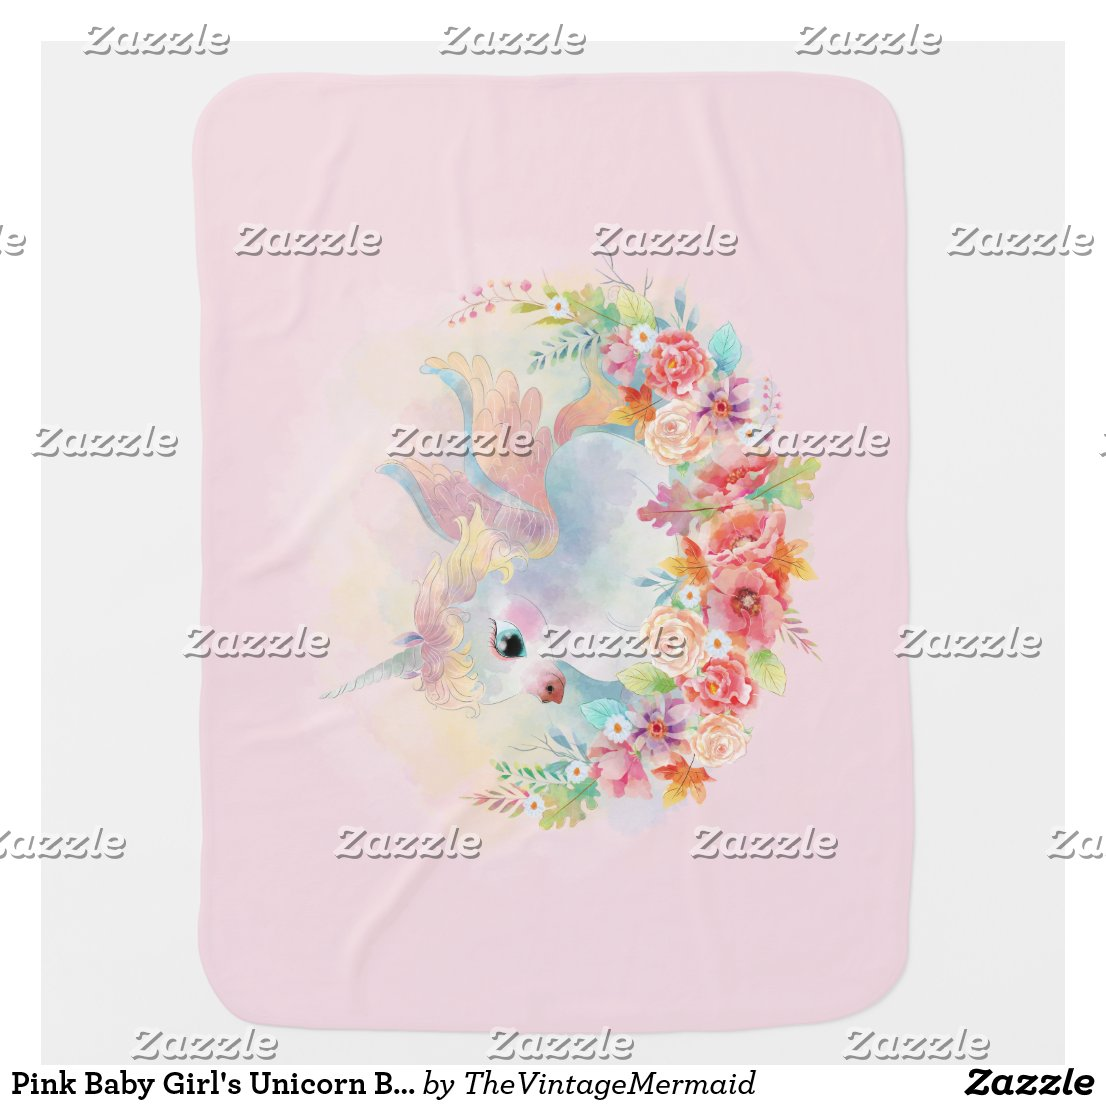 Pink Baby Girl's Unicorn Blanket